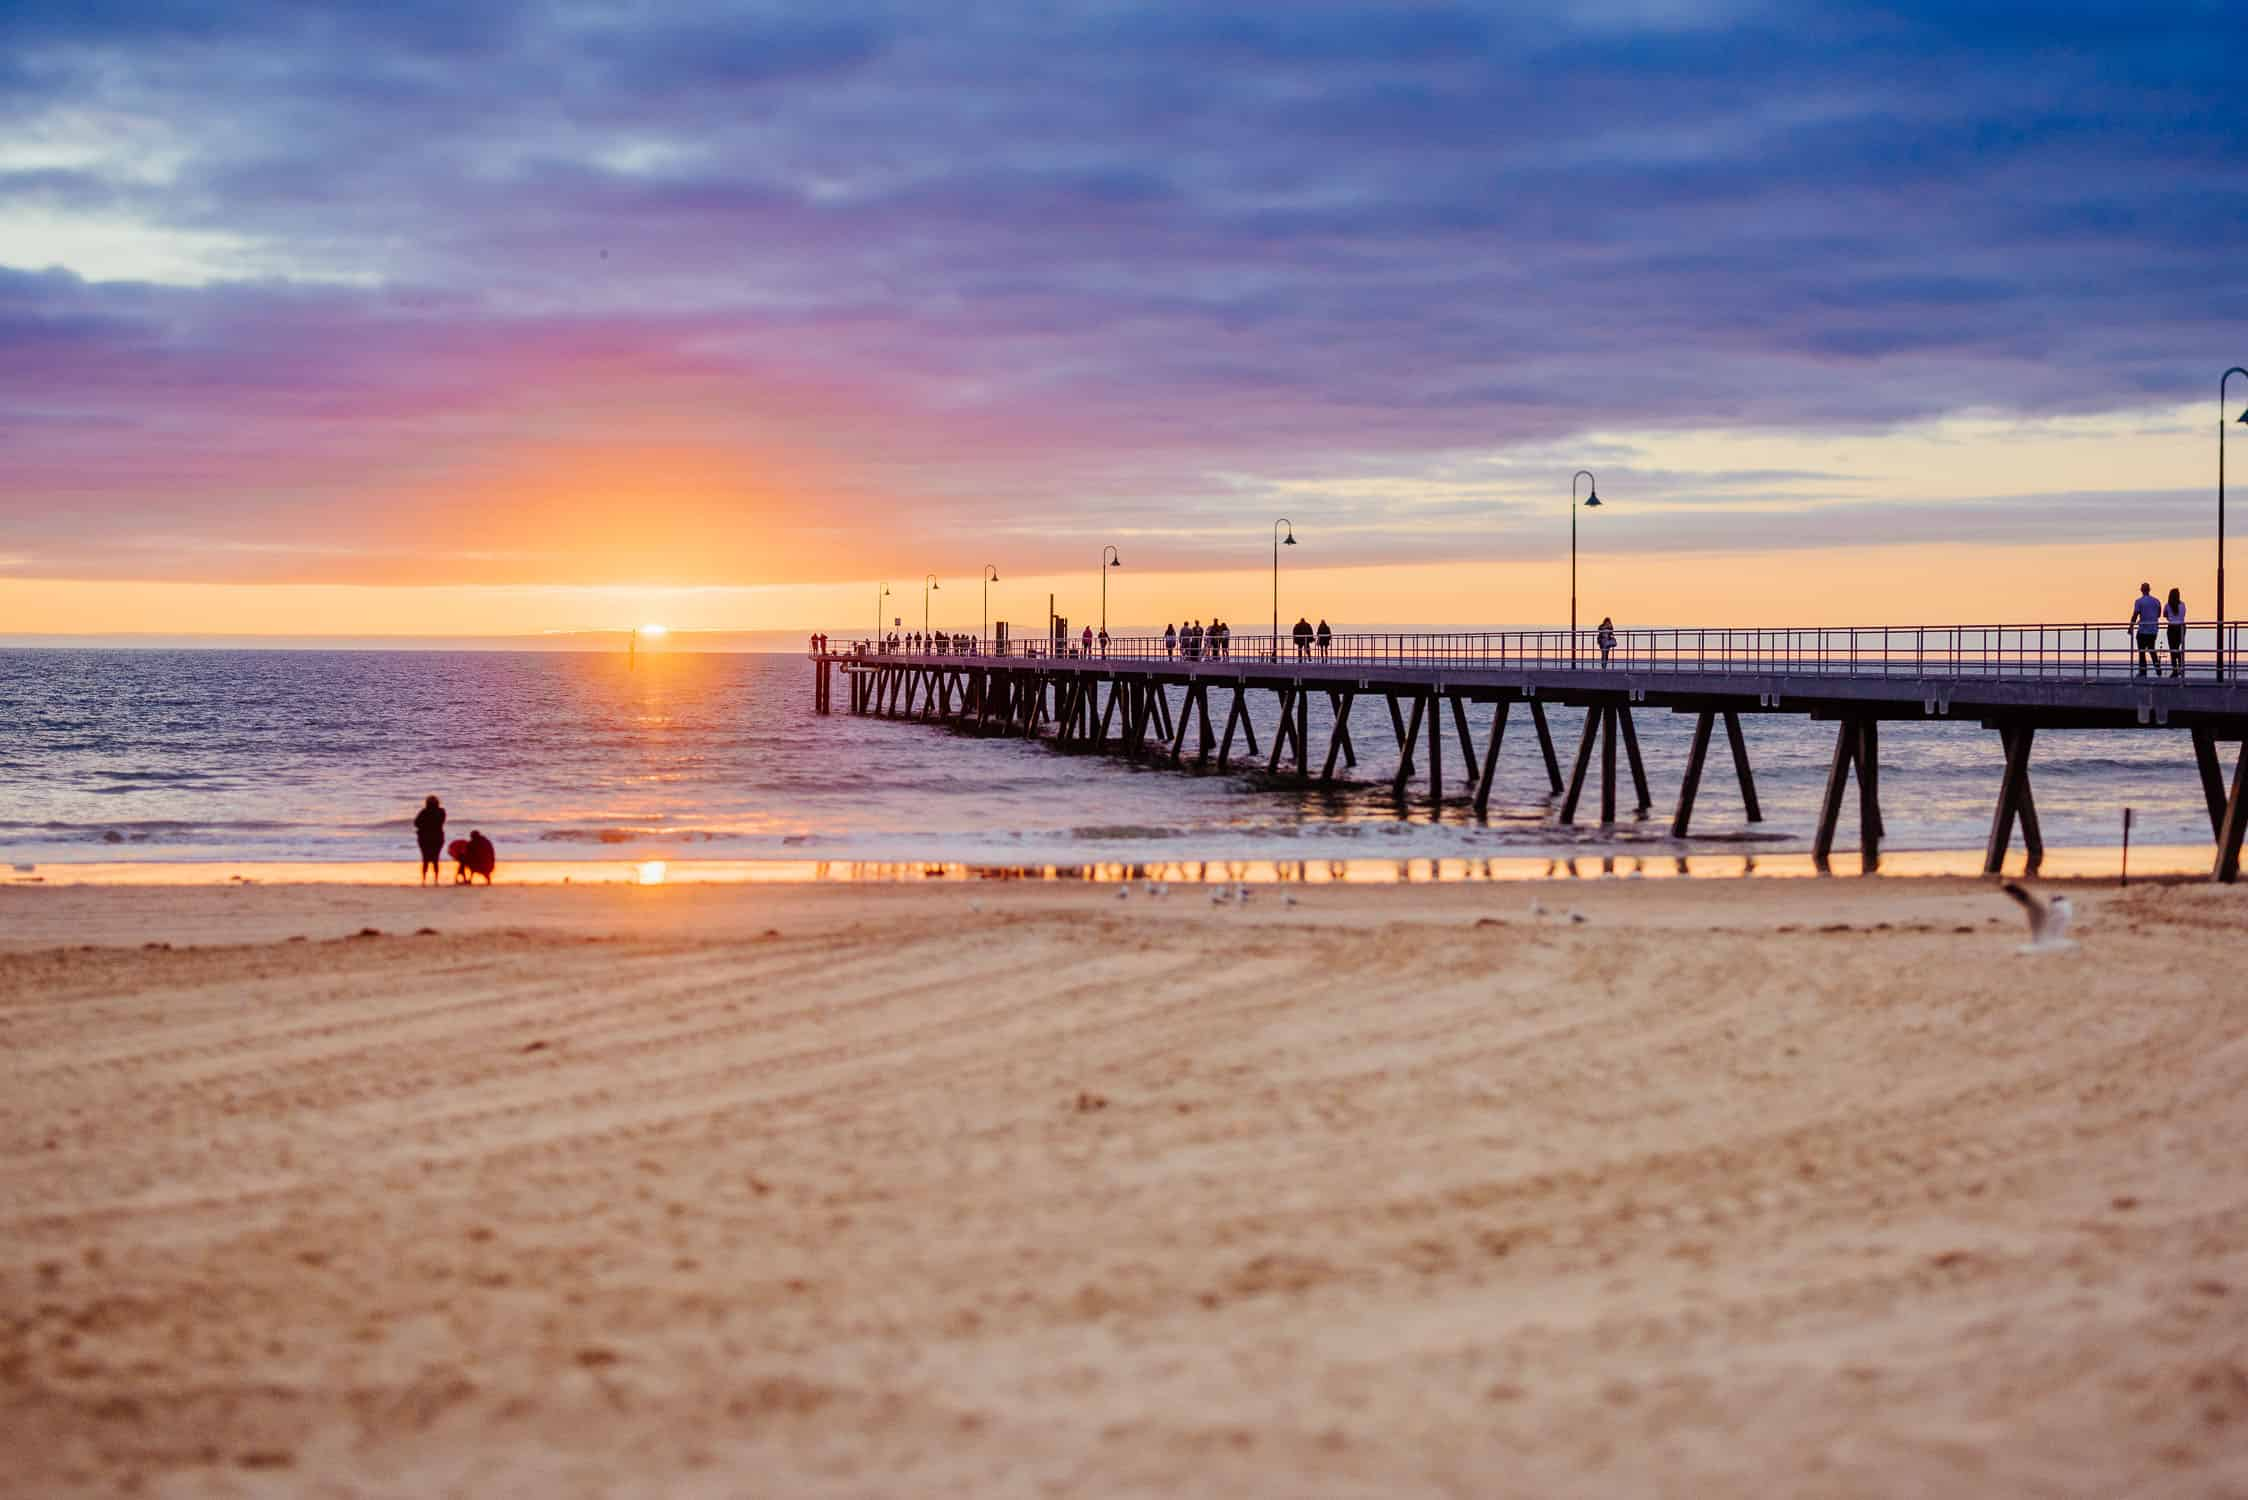 Vibrant Adelaide Sunset at the beach